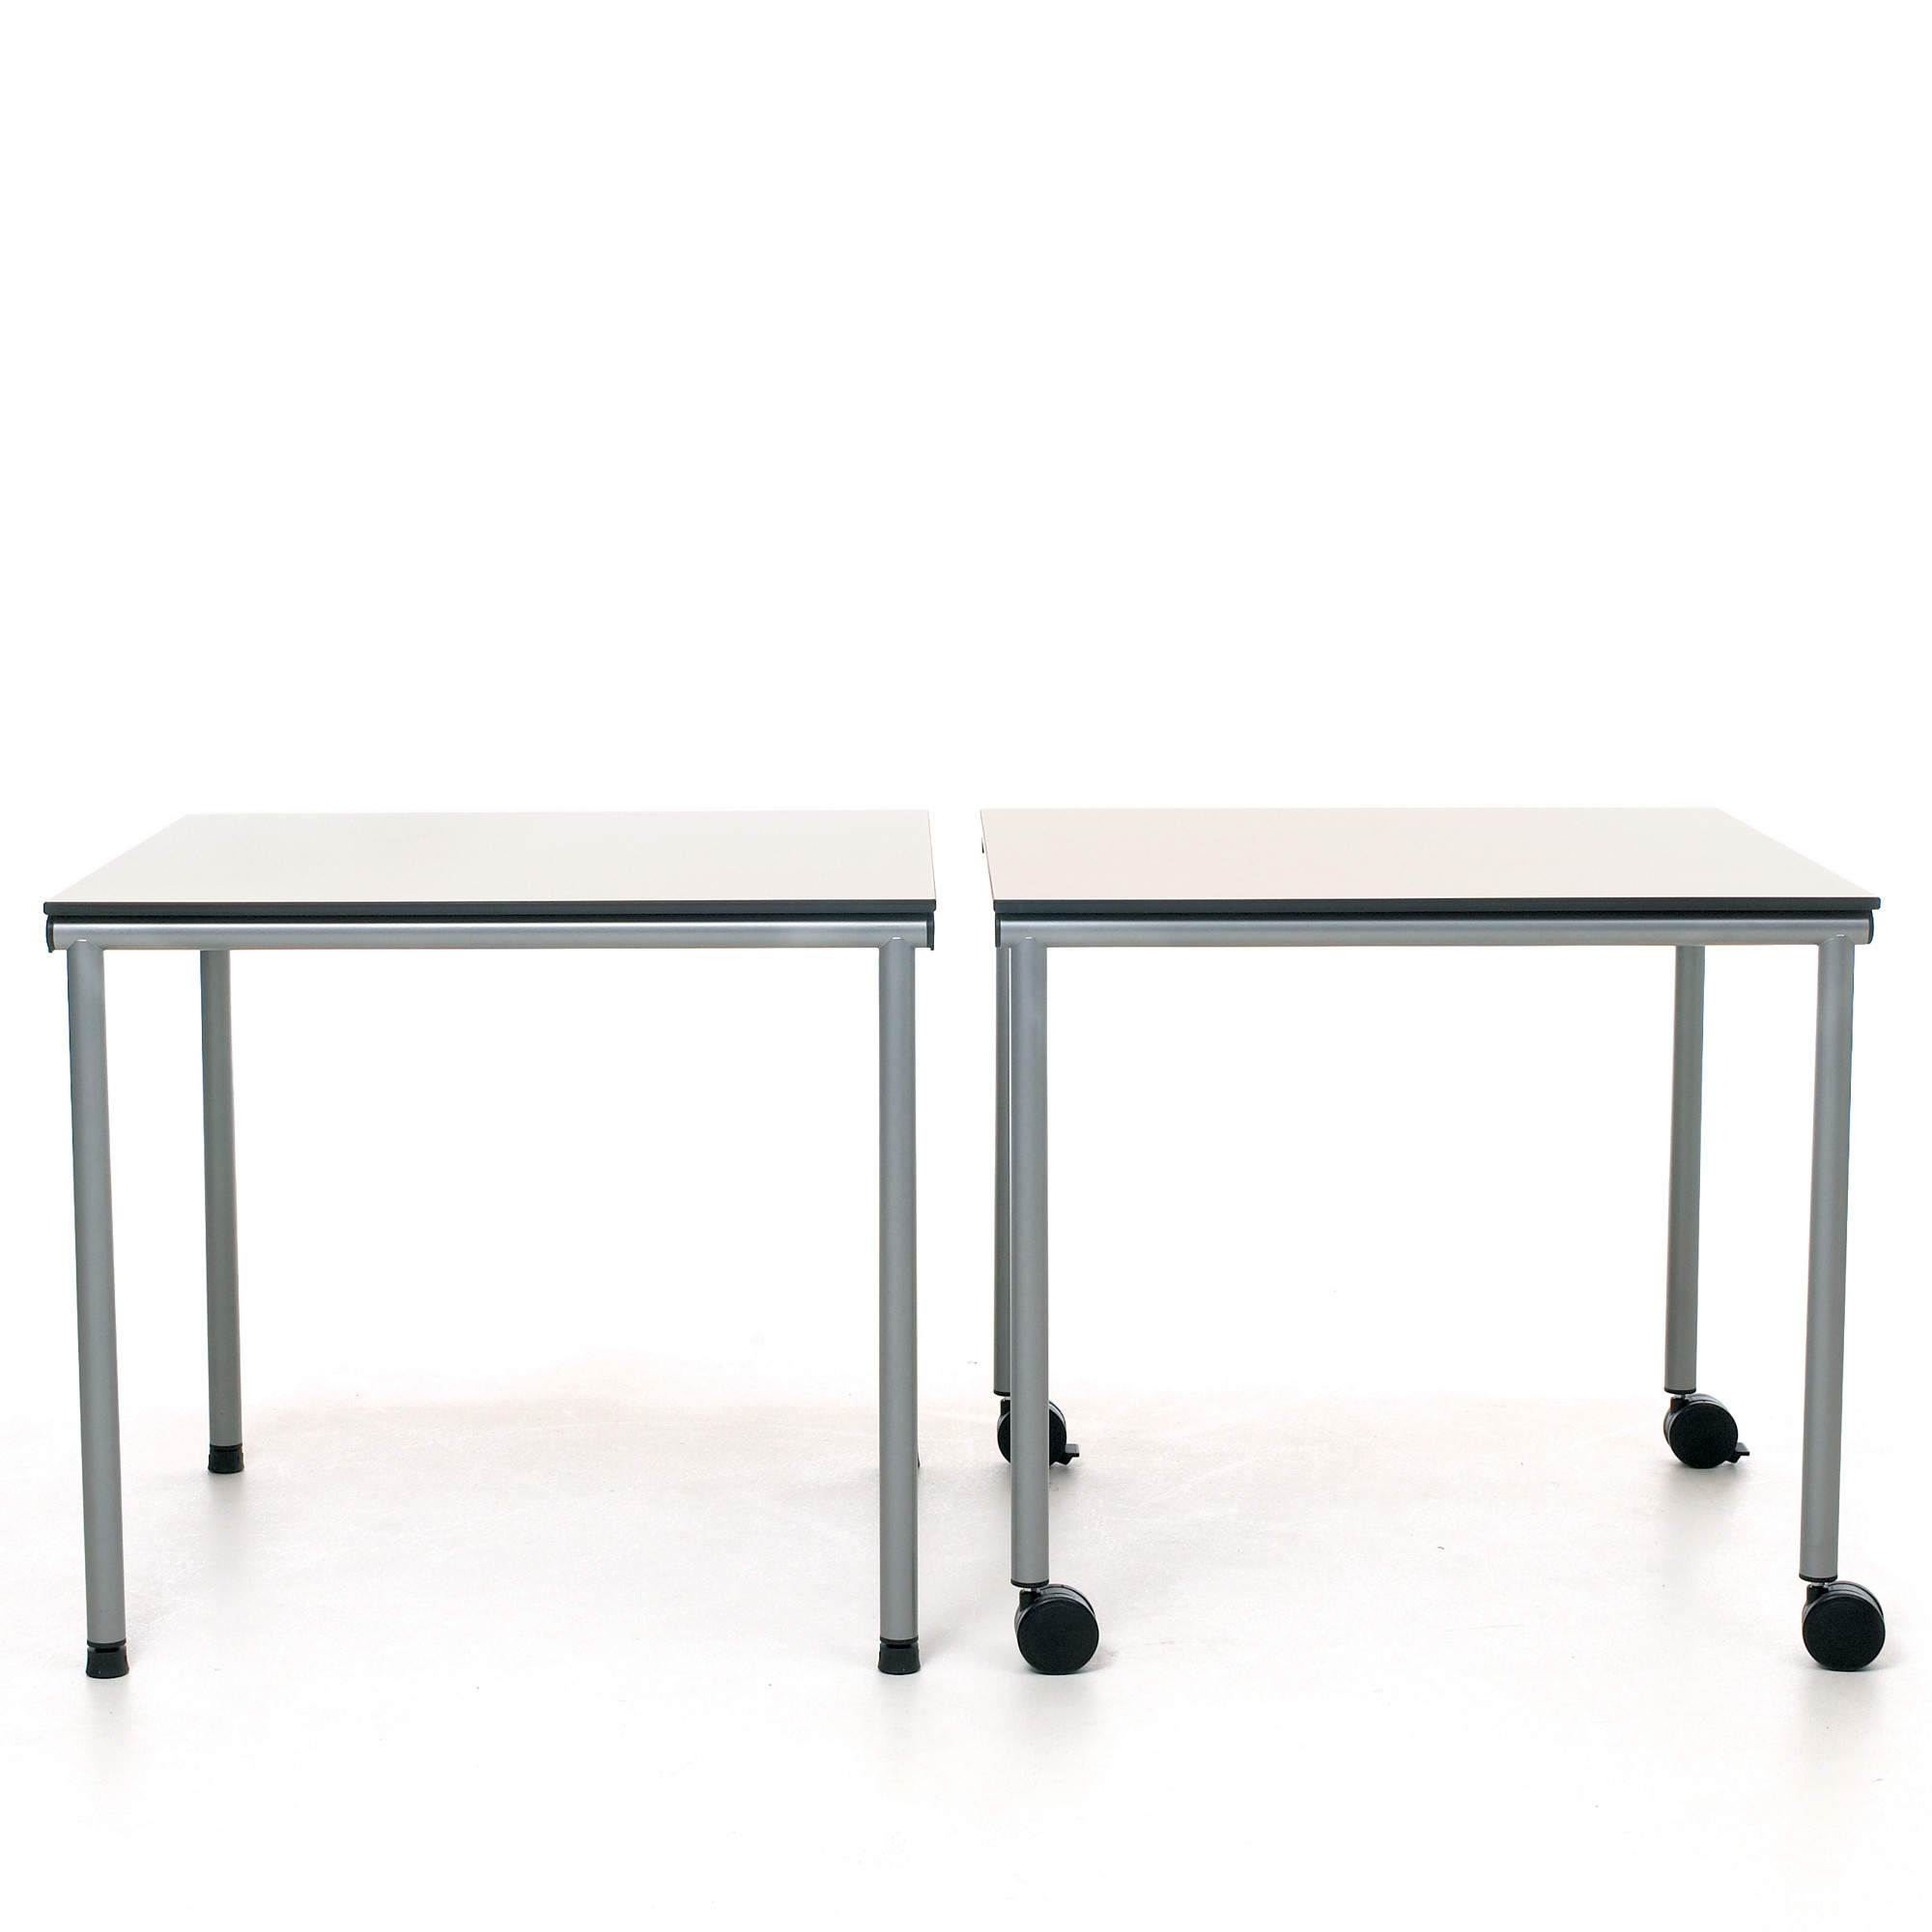 Ahrend 310 Wheeled Tables